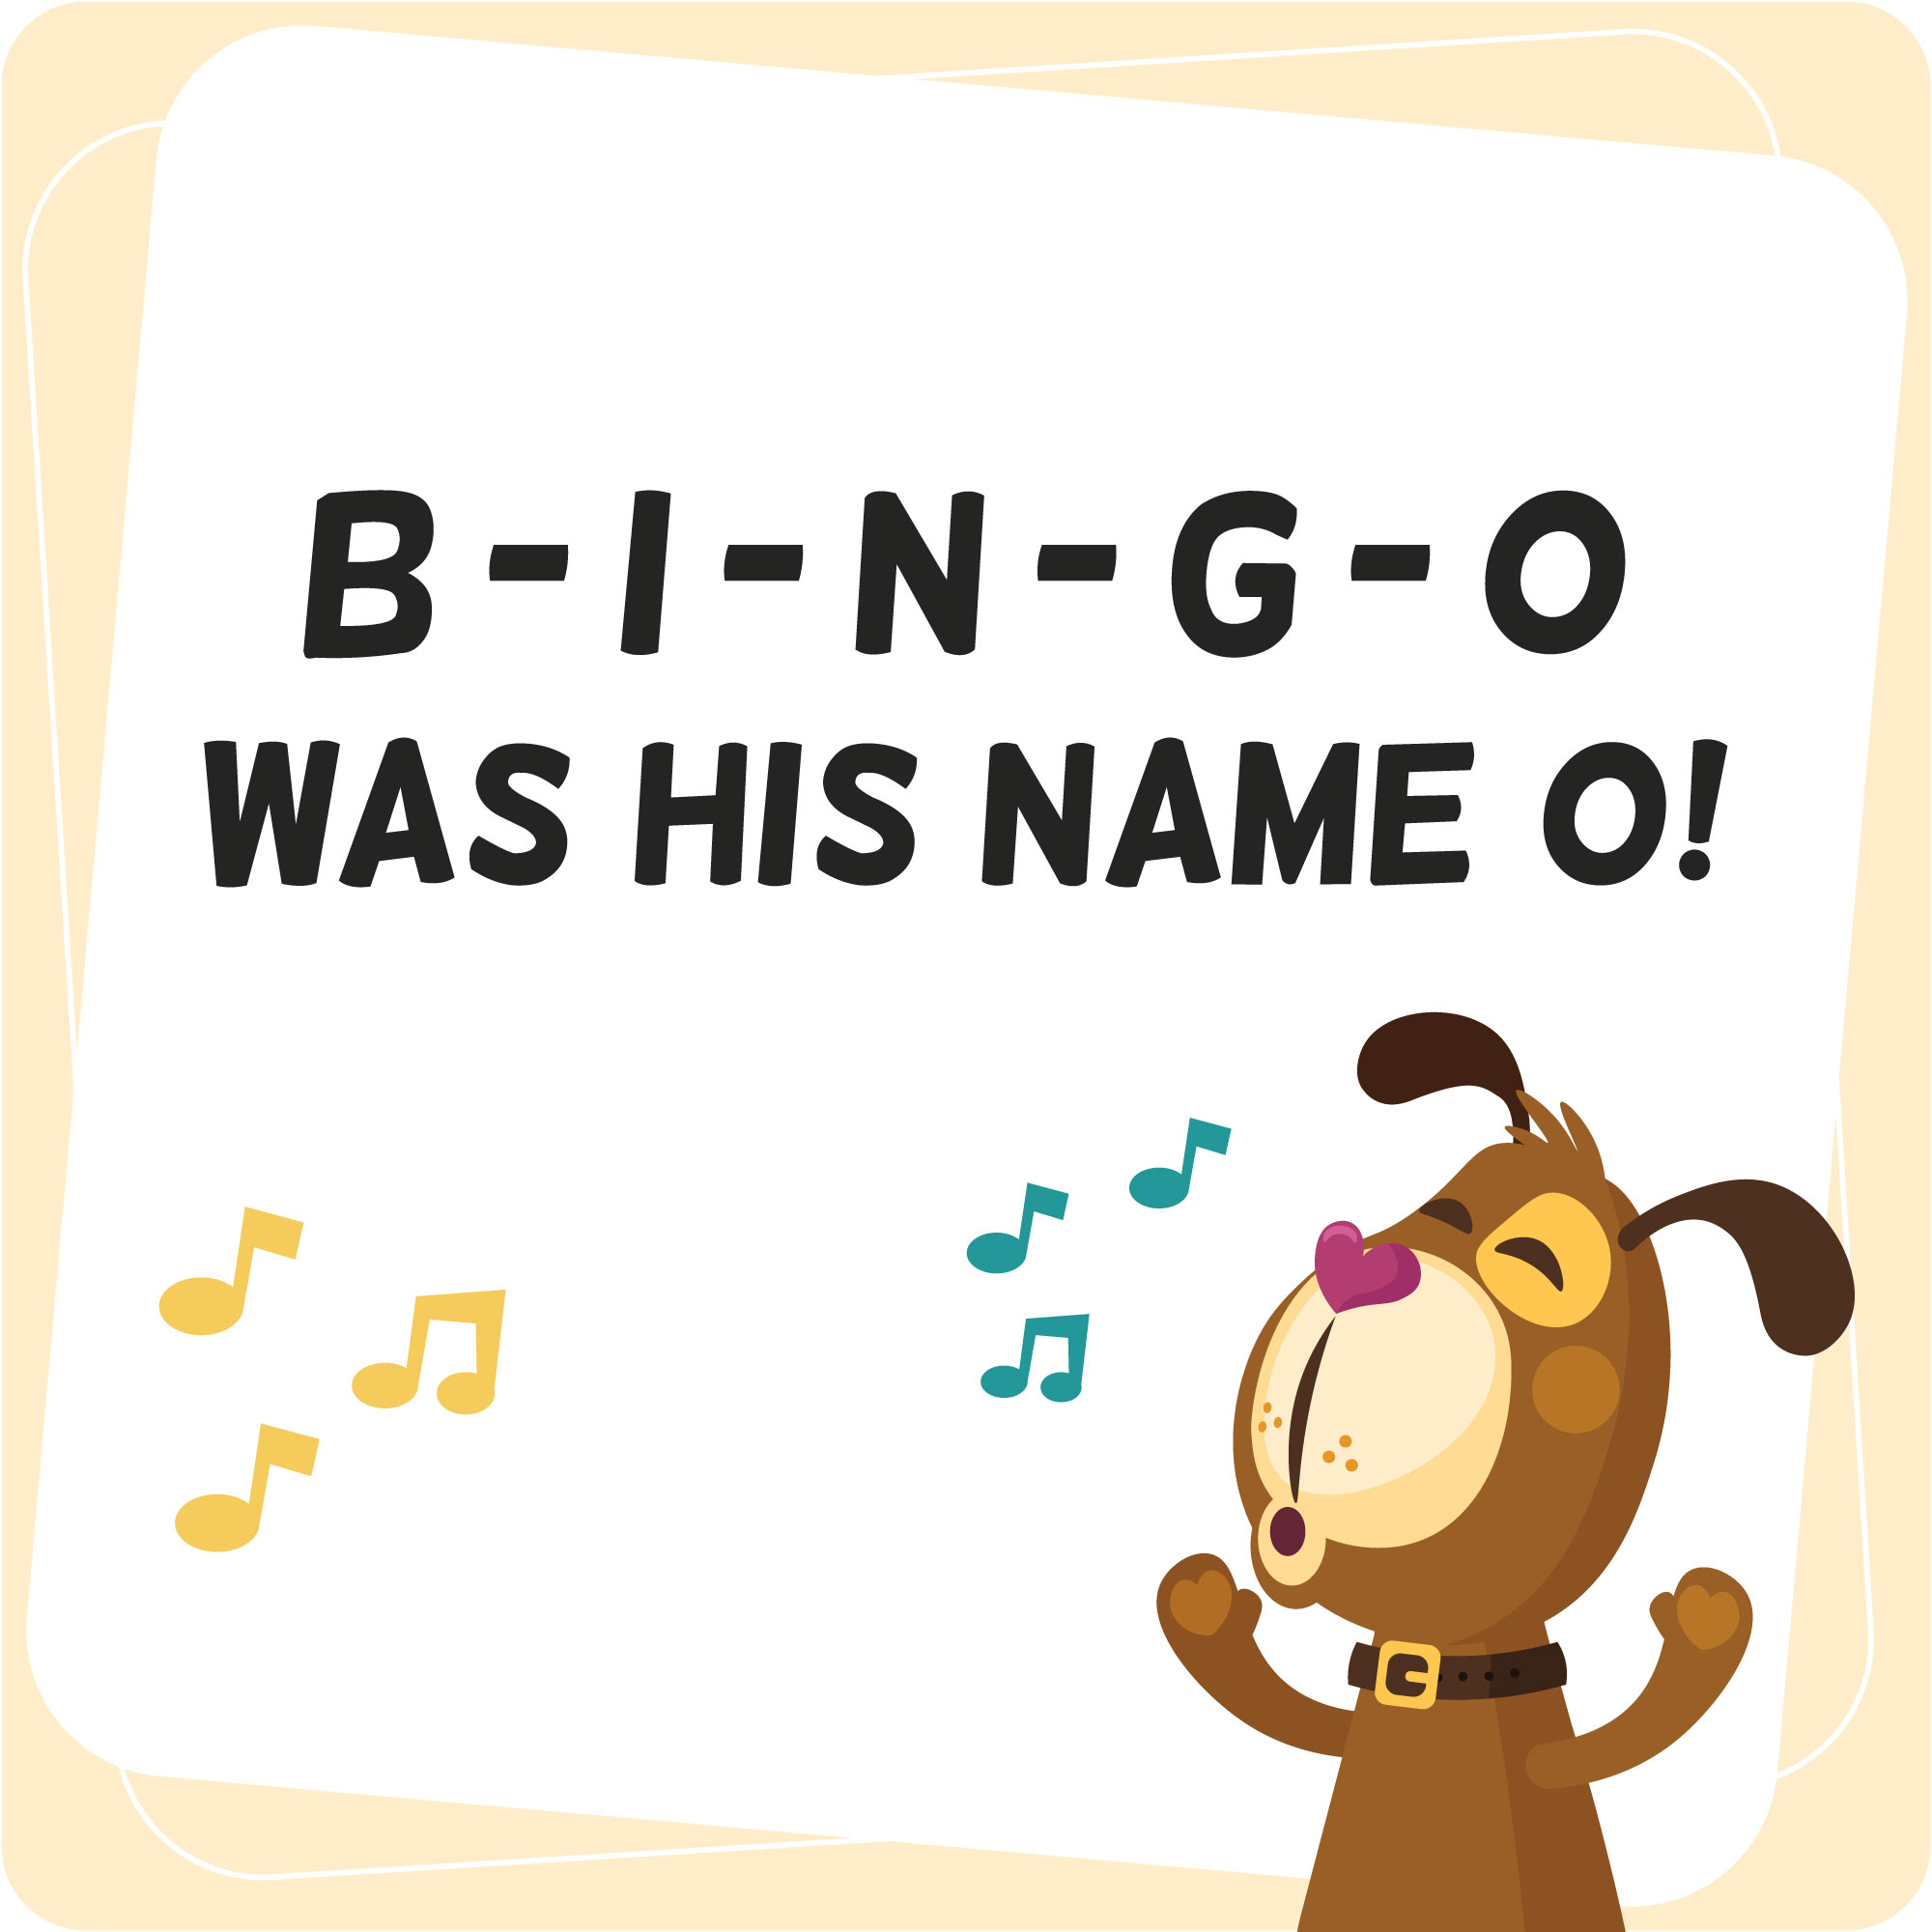 Bingo was his name O